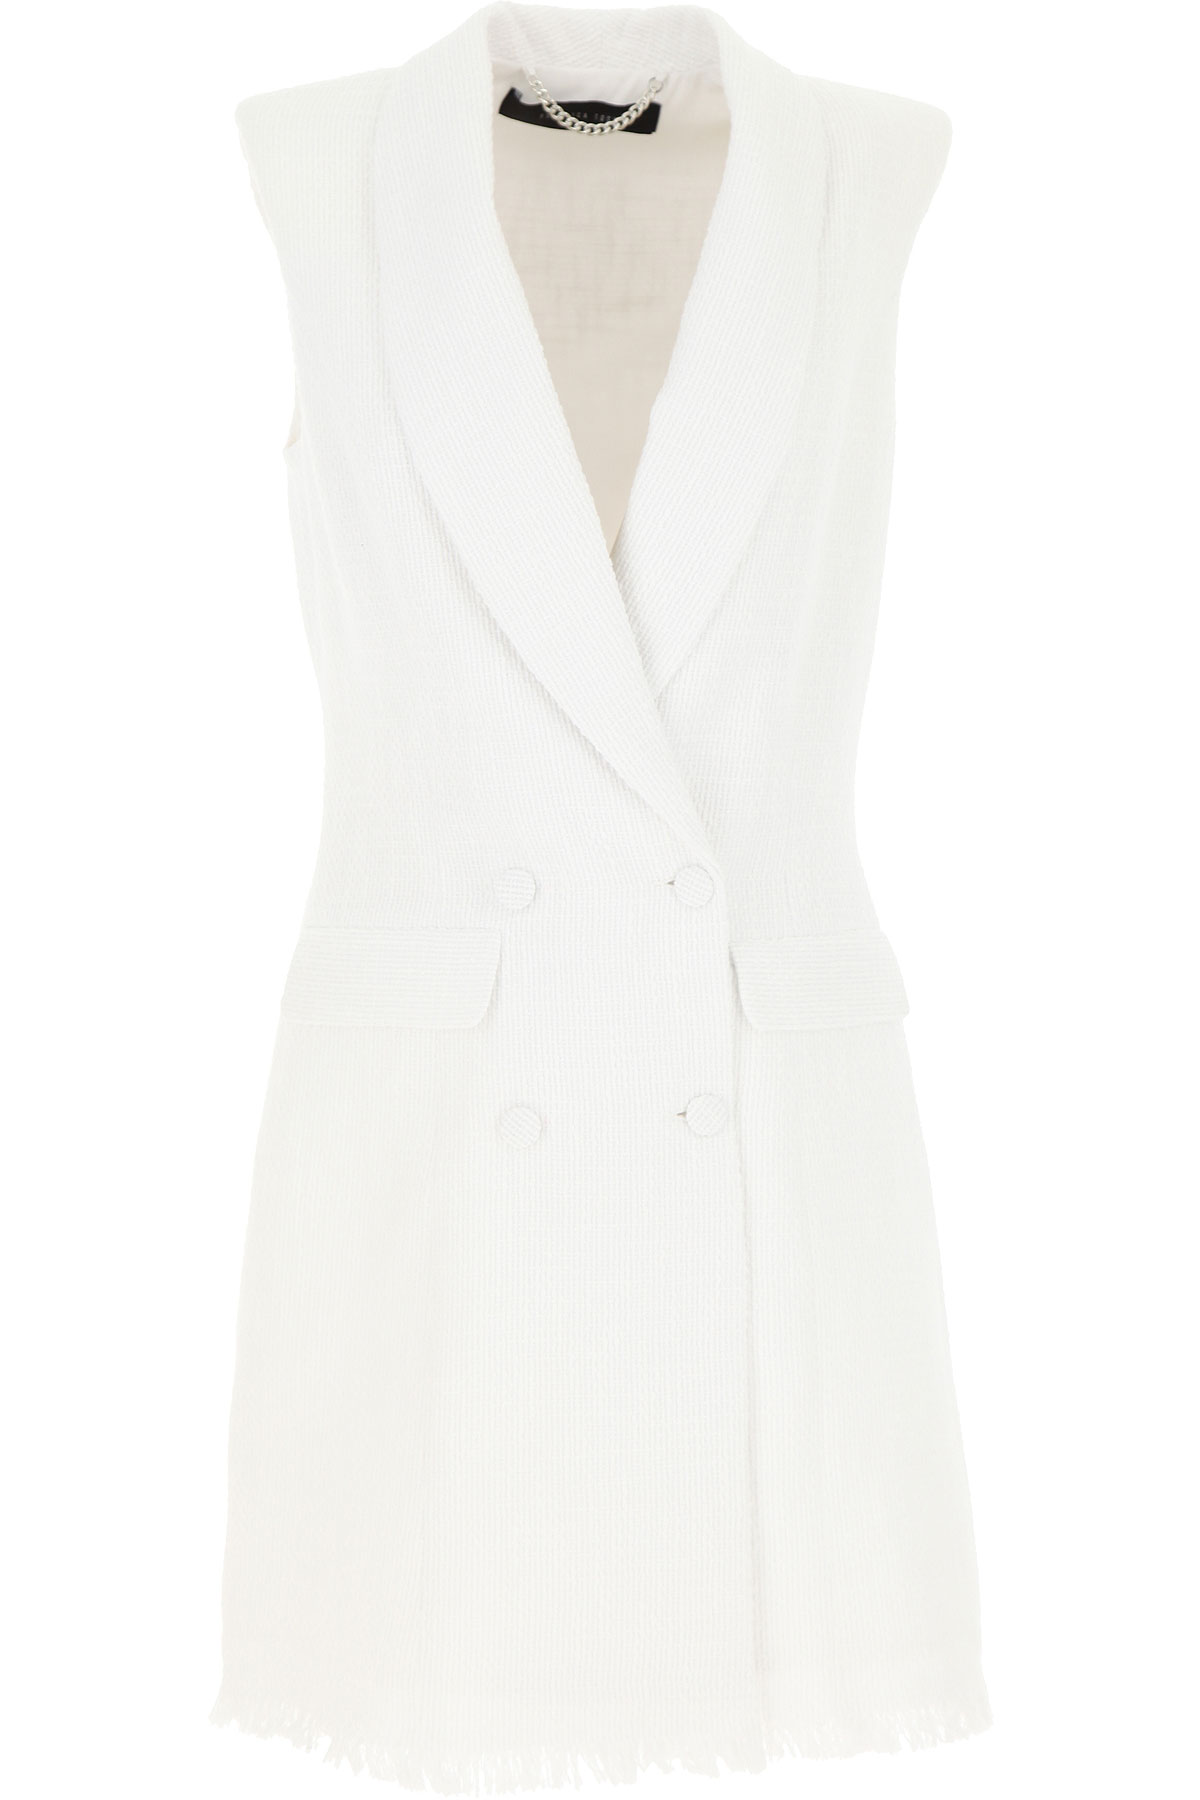 Federica Tosi Dress for Women, Evening Cocktail Party On Sale, White, Cotton, 2019, 4 6